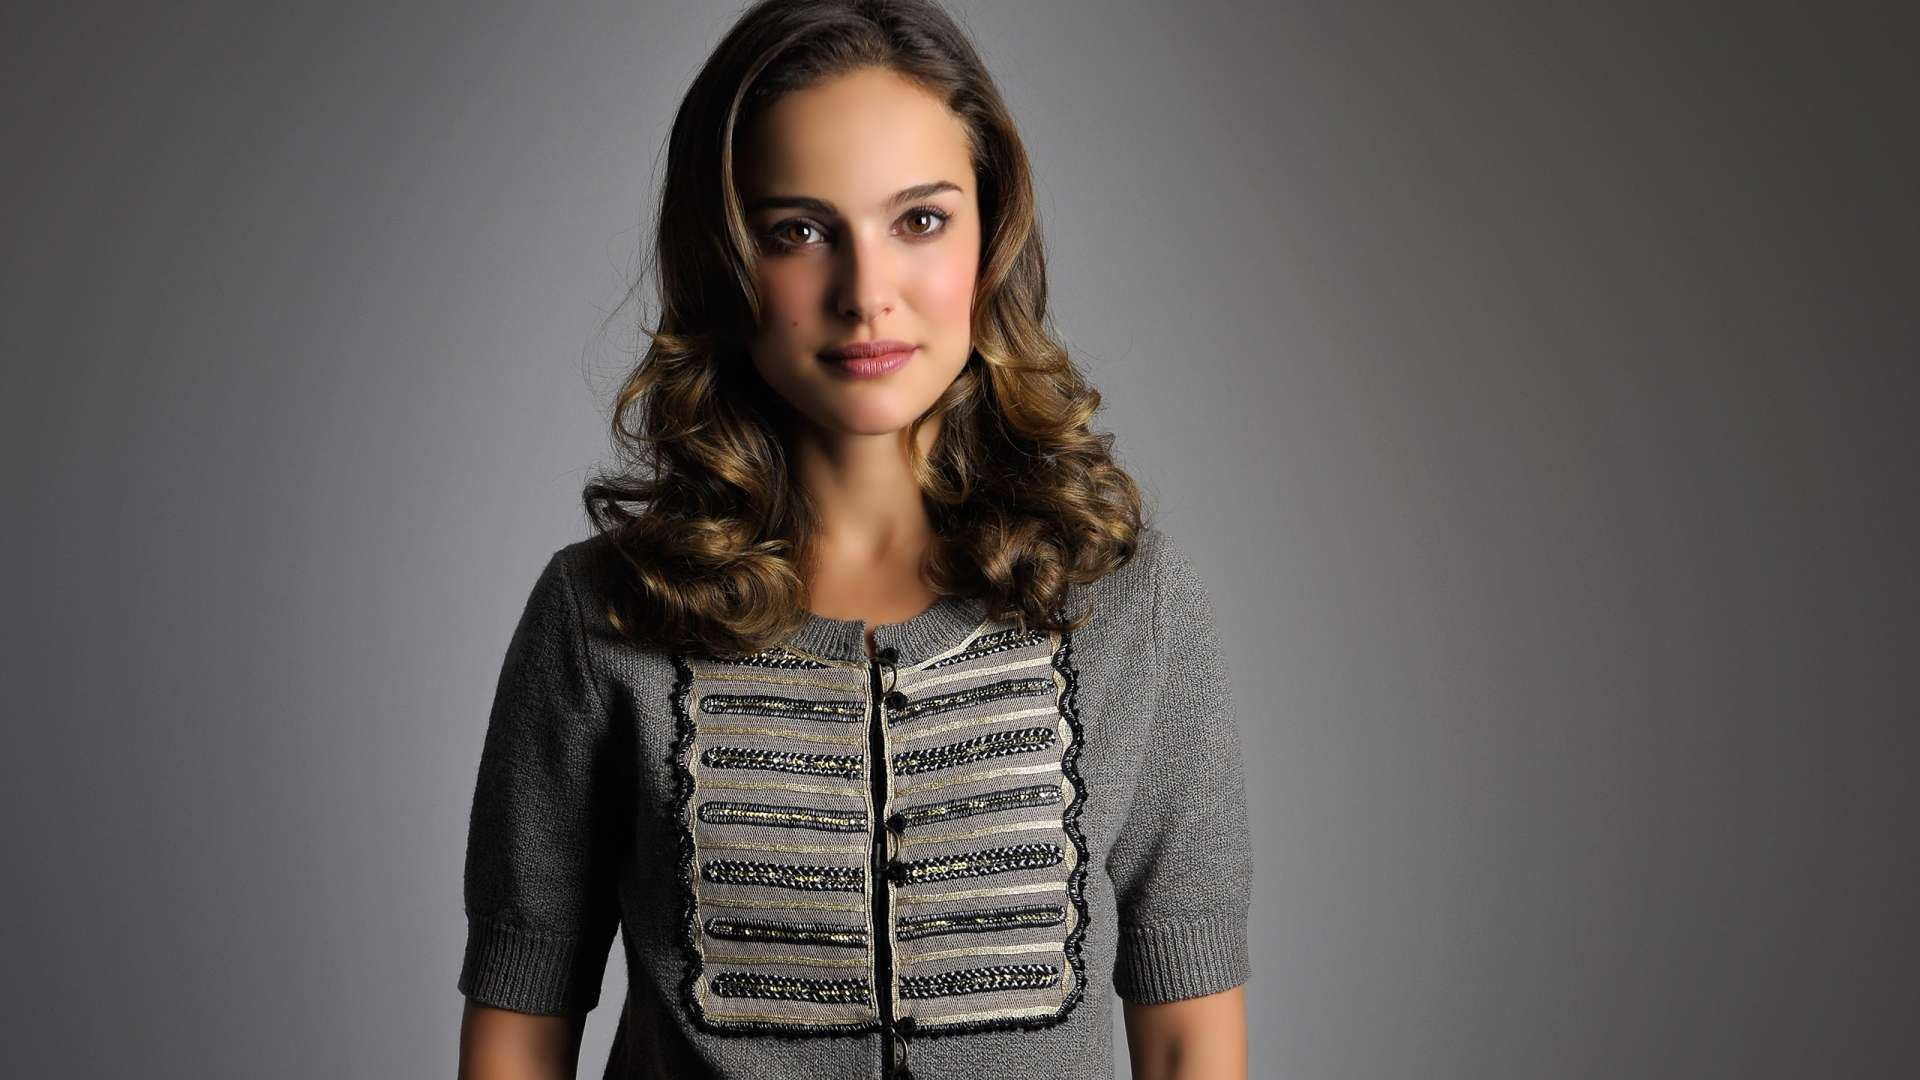 natalie portman desktop wallpaper 52230